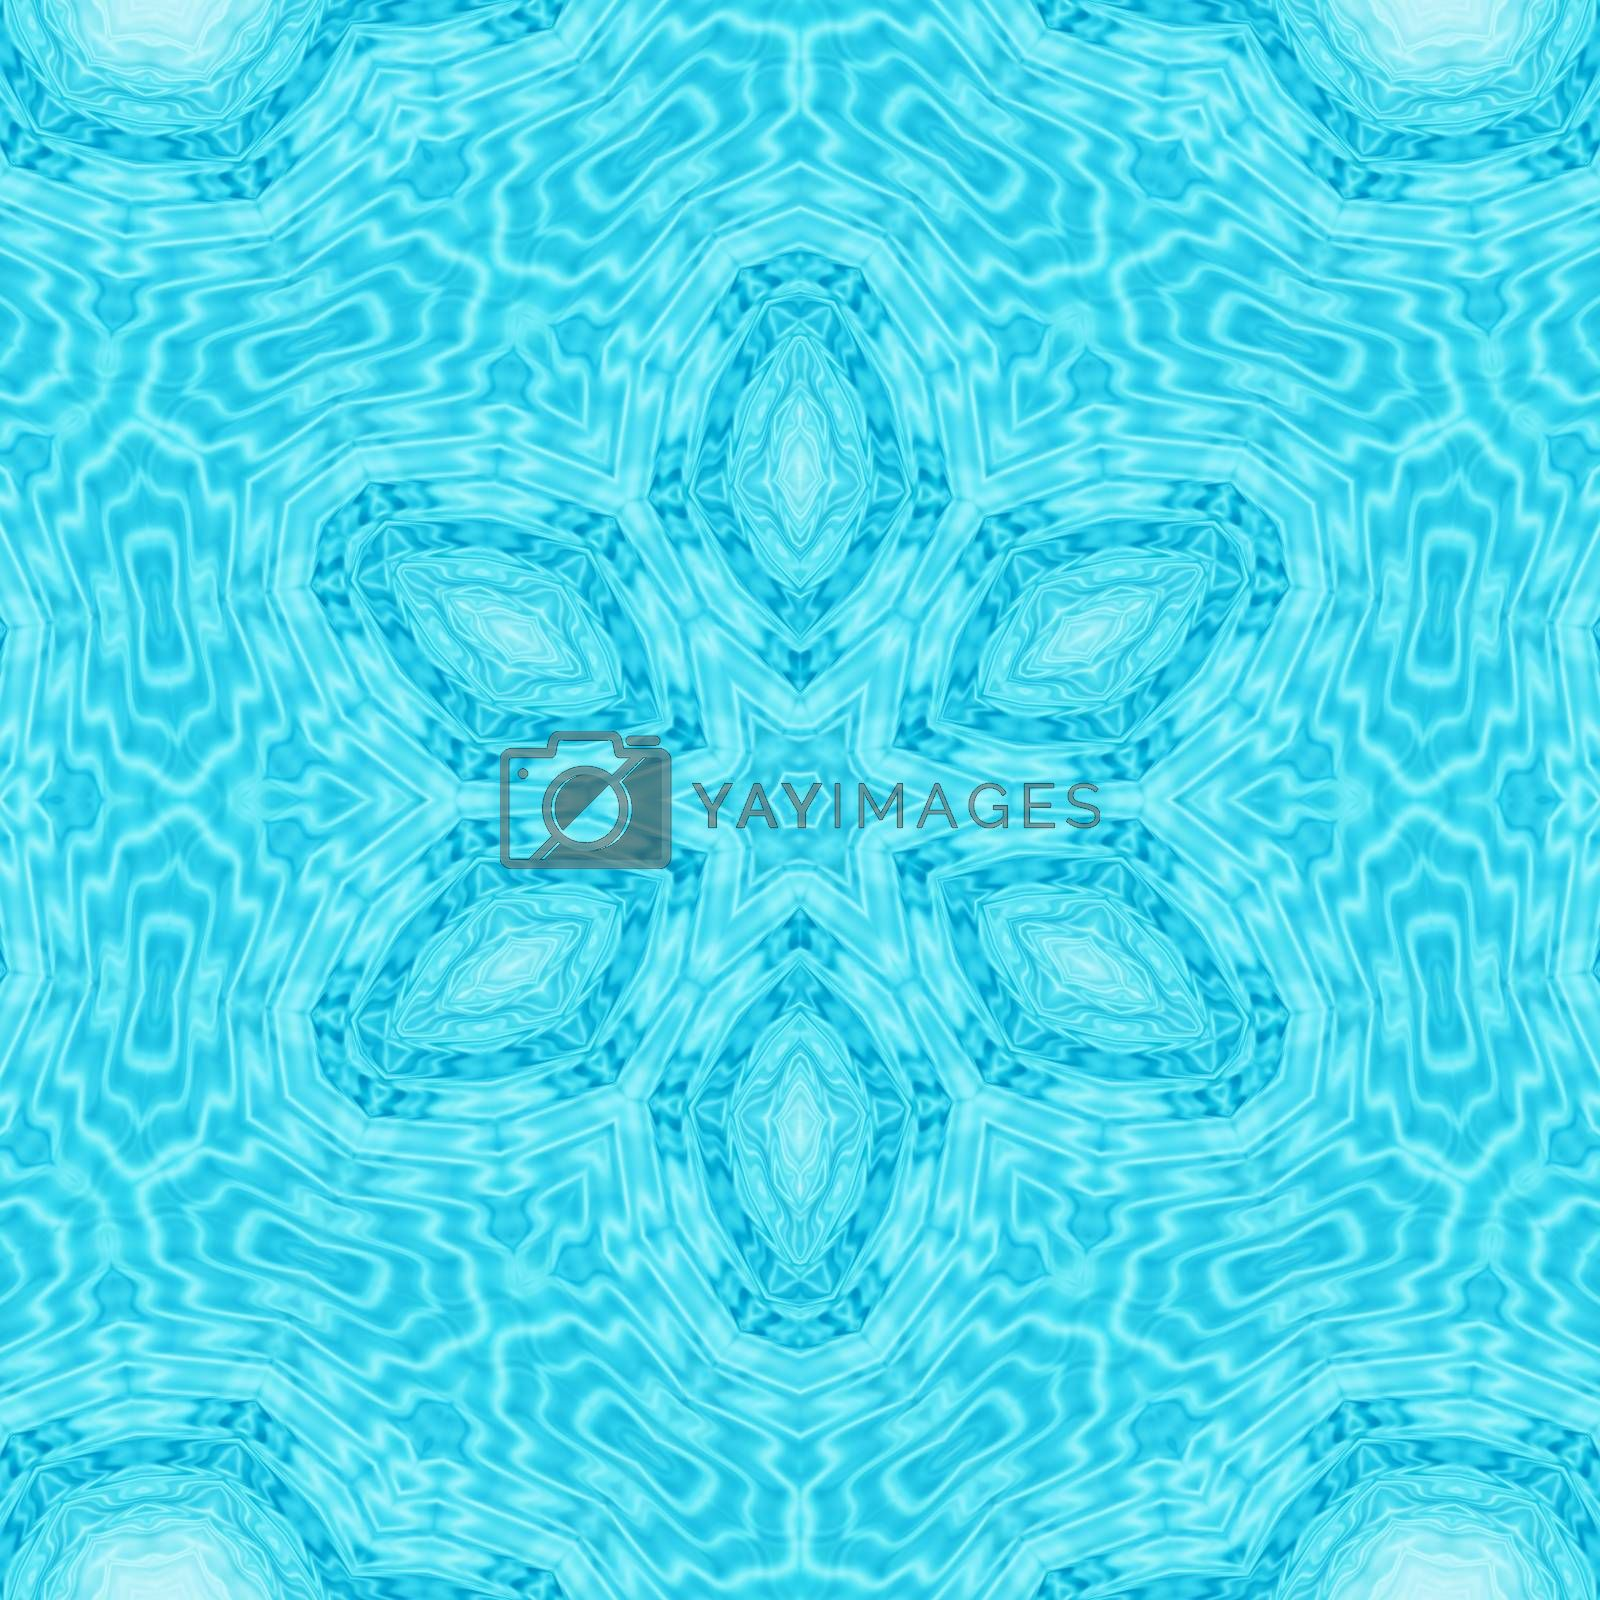 Abstract background with pattern from water ripples